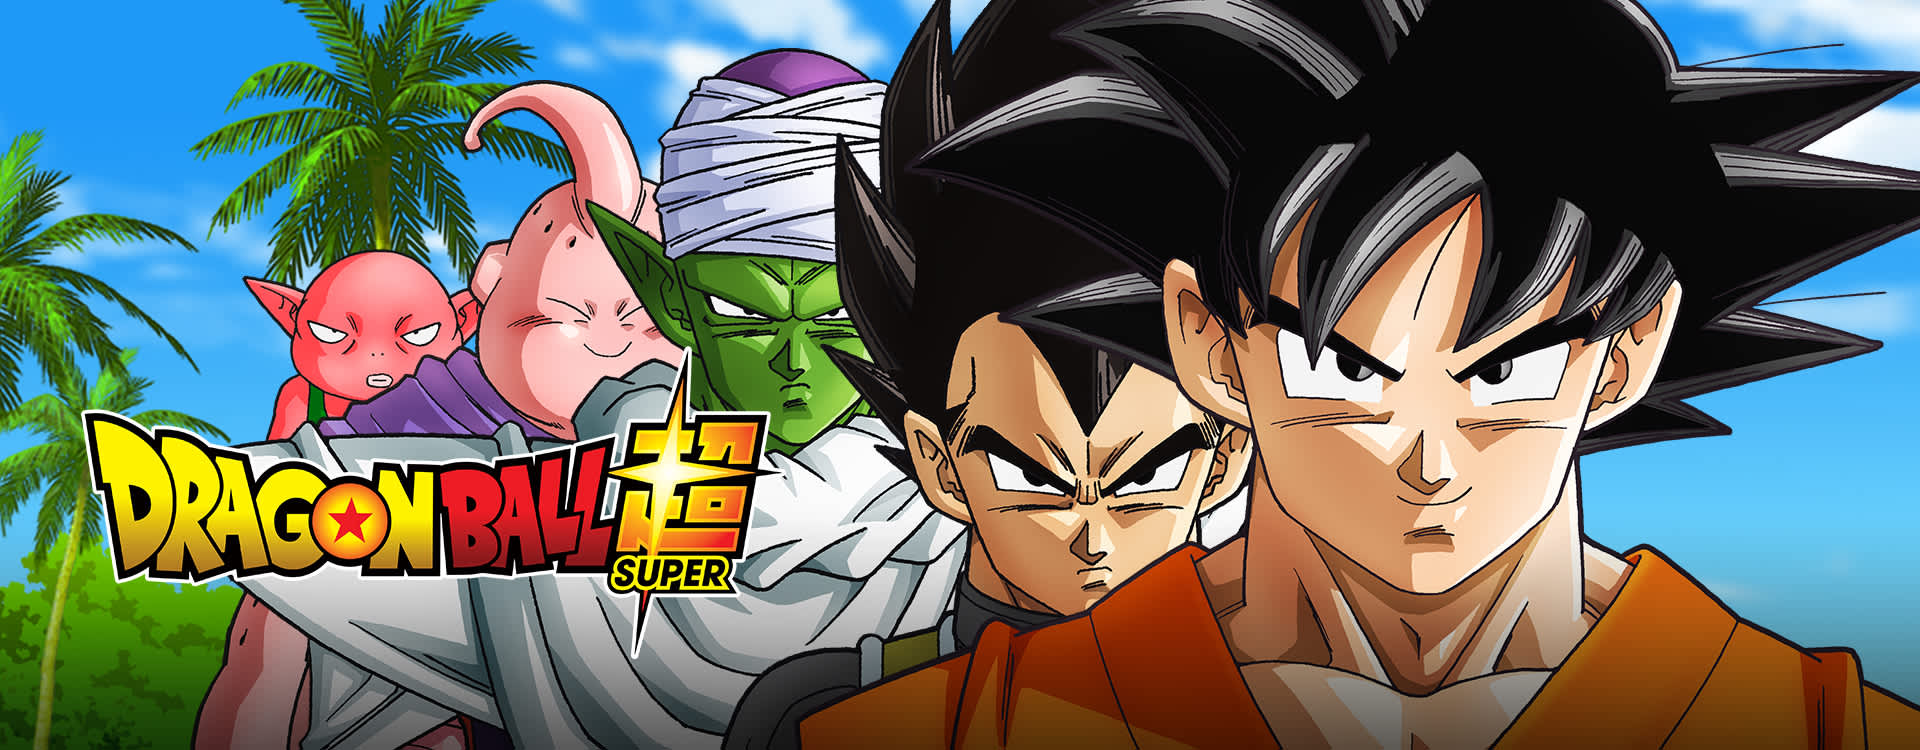 dragon ball z japanese episodes online